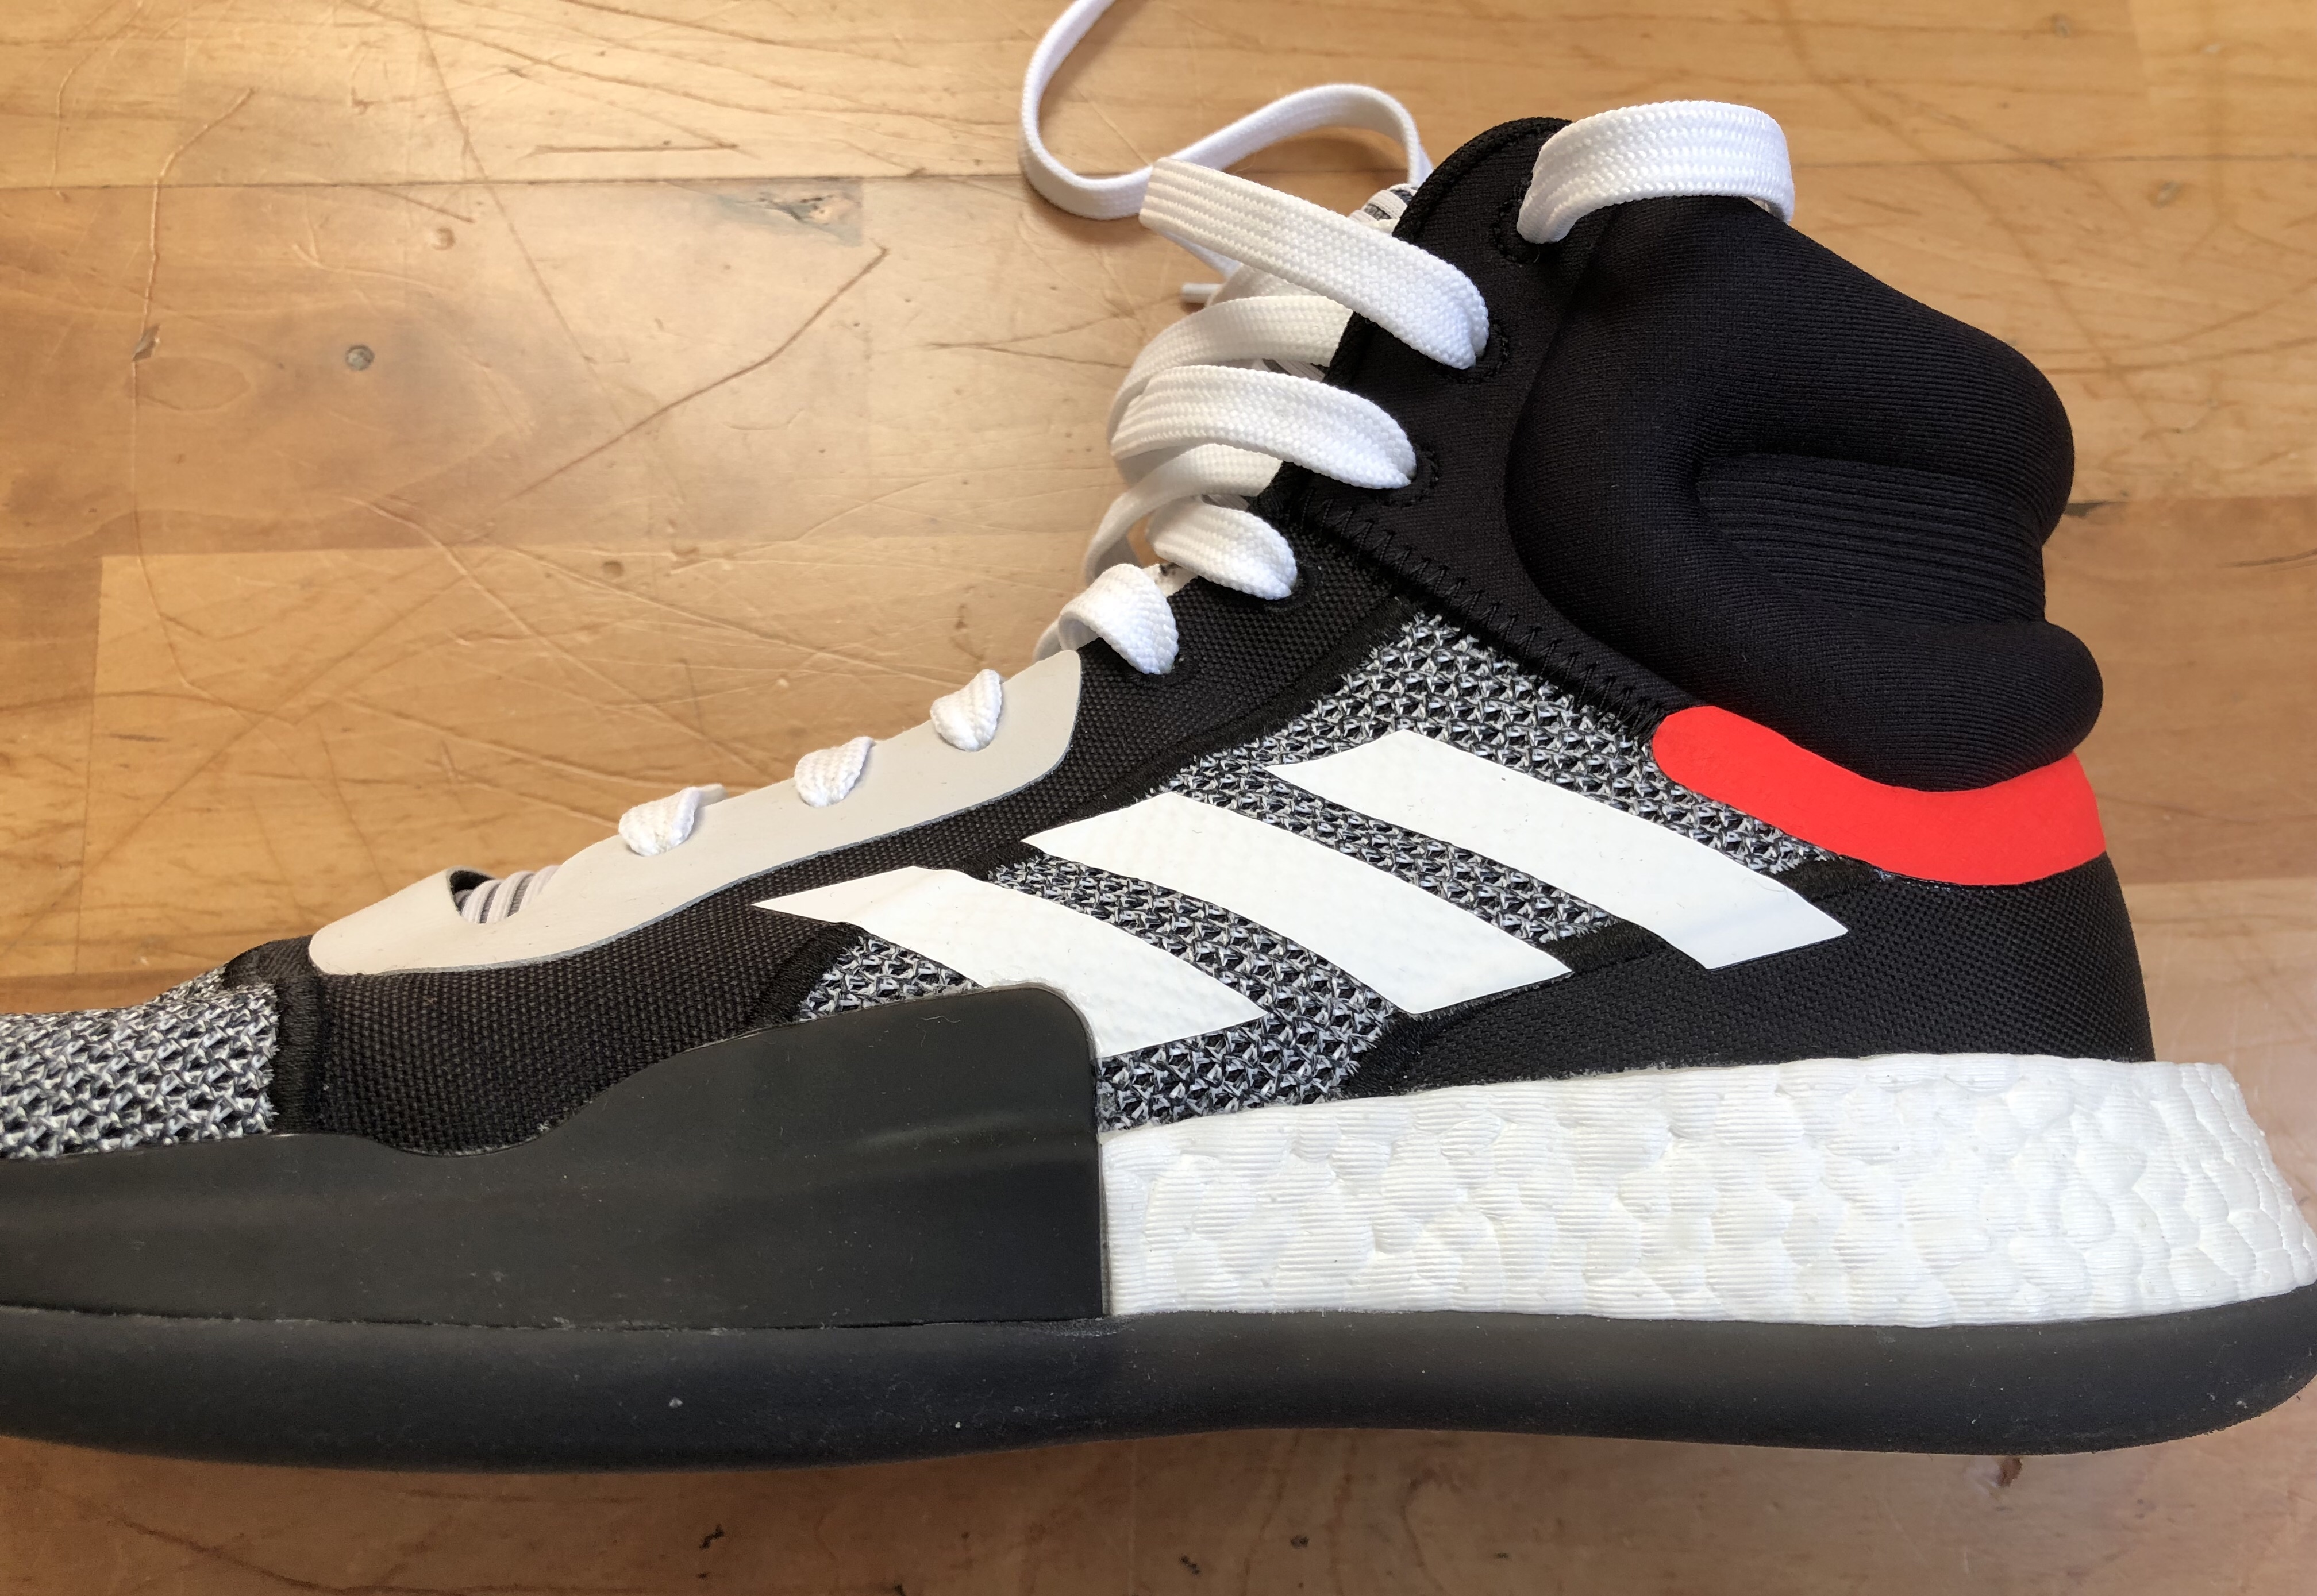 NMD R1 Archives WearTesters